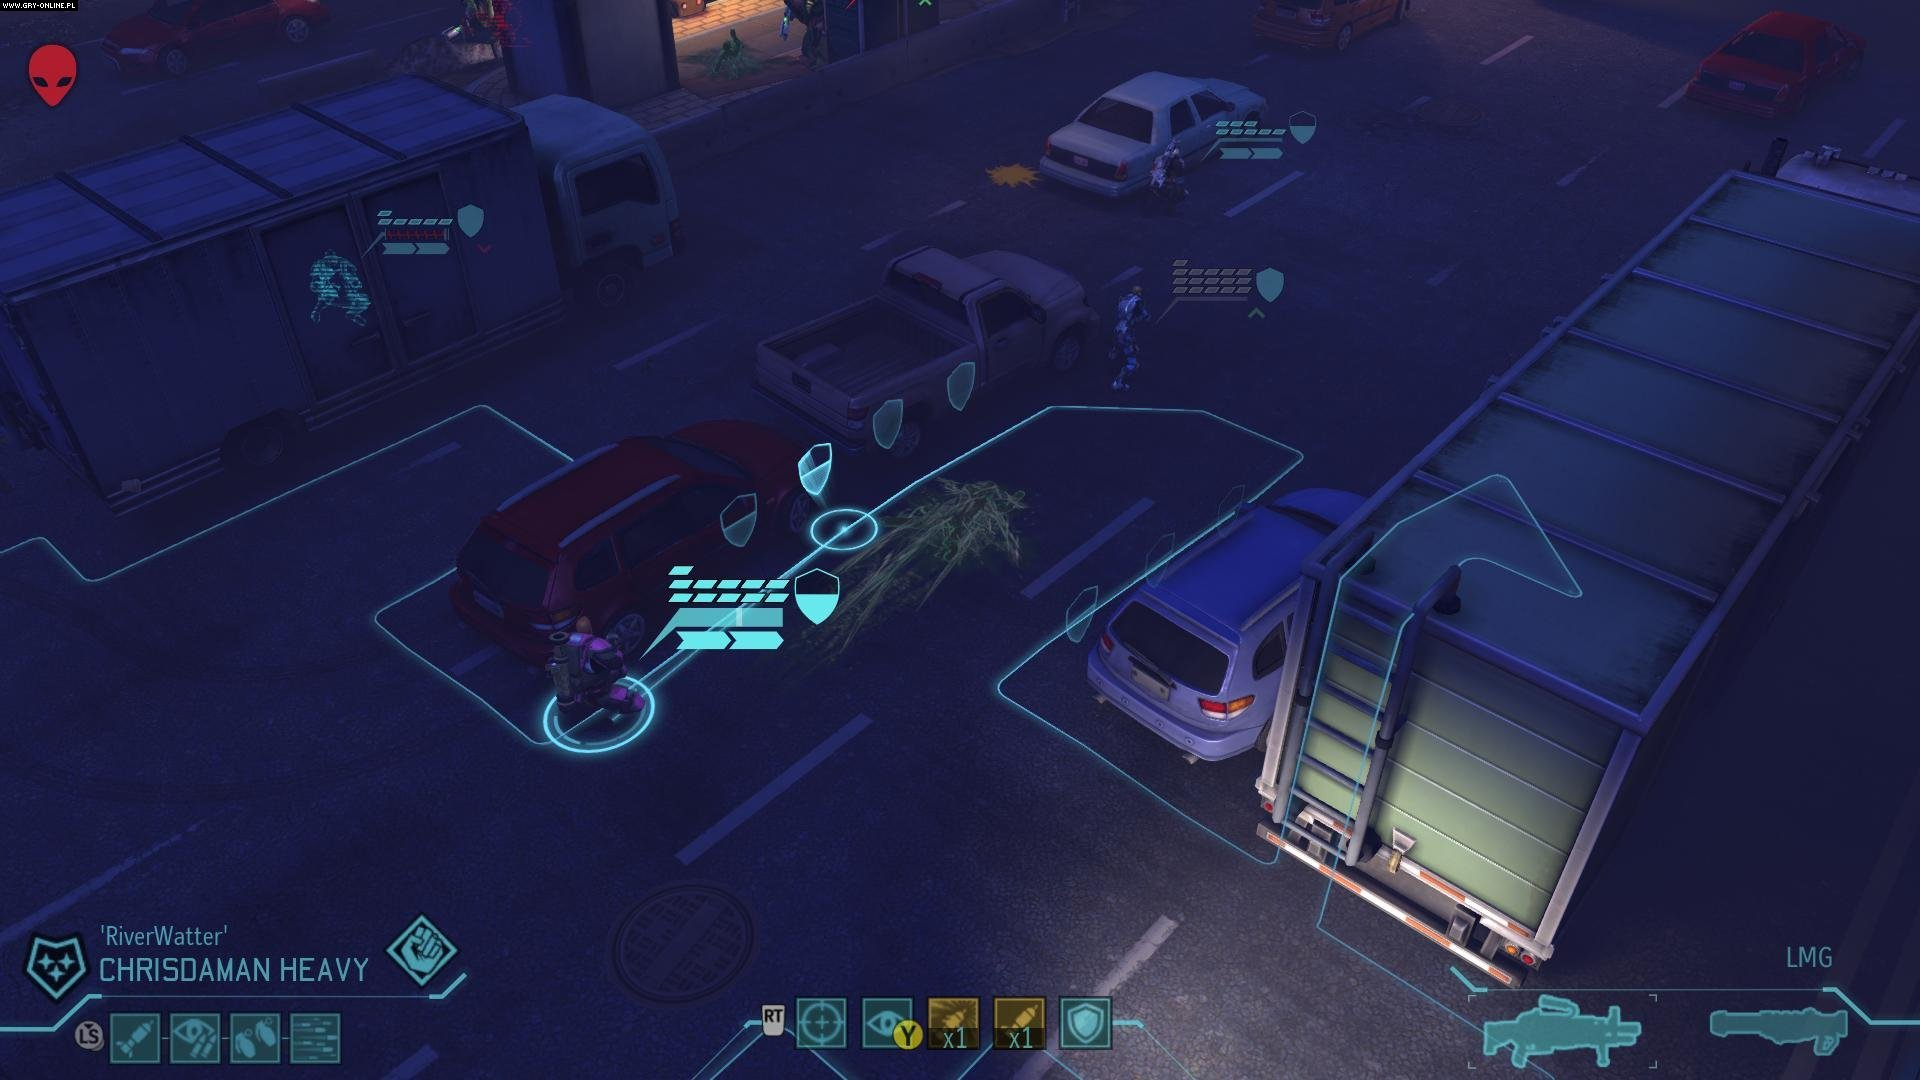 XCOM: Enemy Unknown PC, X360, PS3 Gry Screen 82/179, Firaxis Games, 2K Games